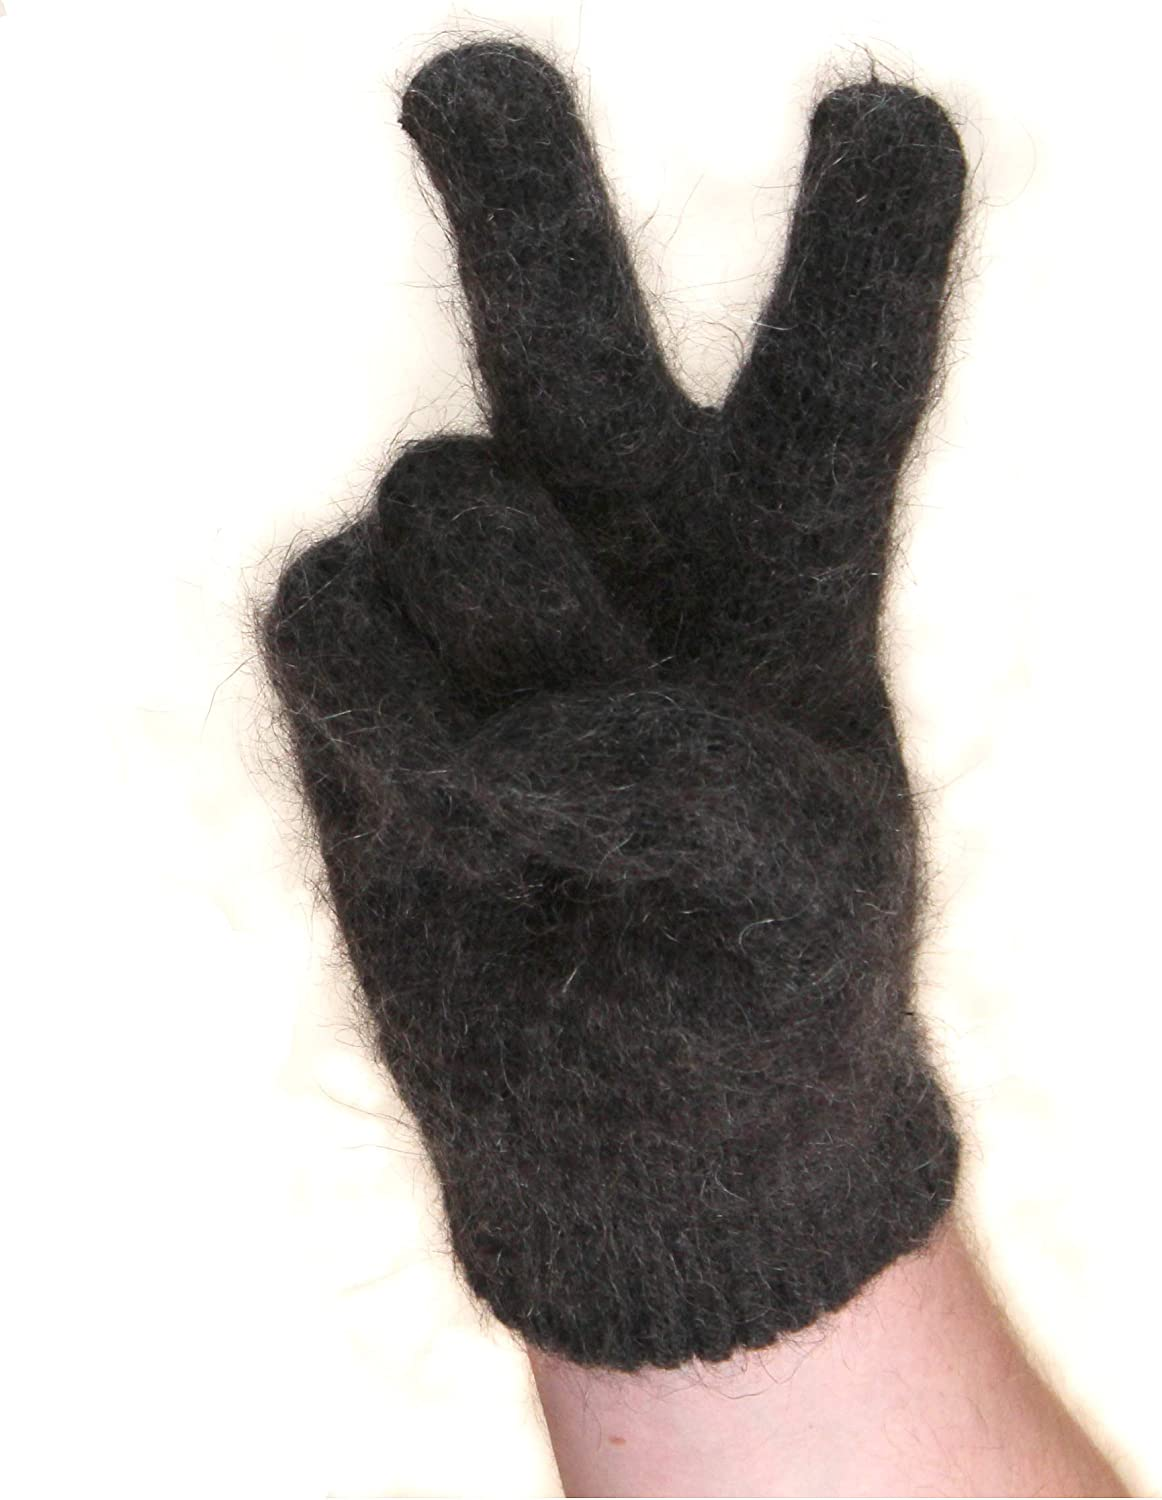 Warm Wool Gloves for Men Quality inspection Fluff Max 83% OFF Winter Cold Goat with